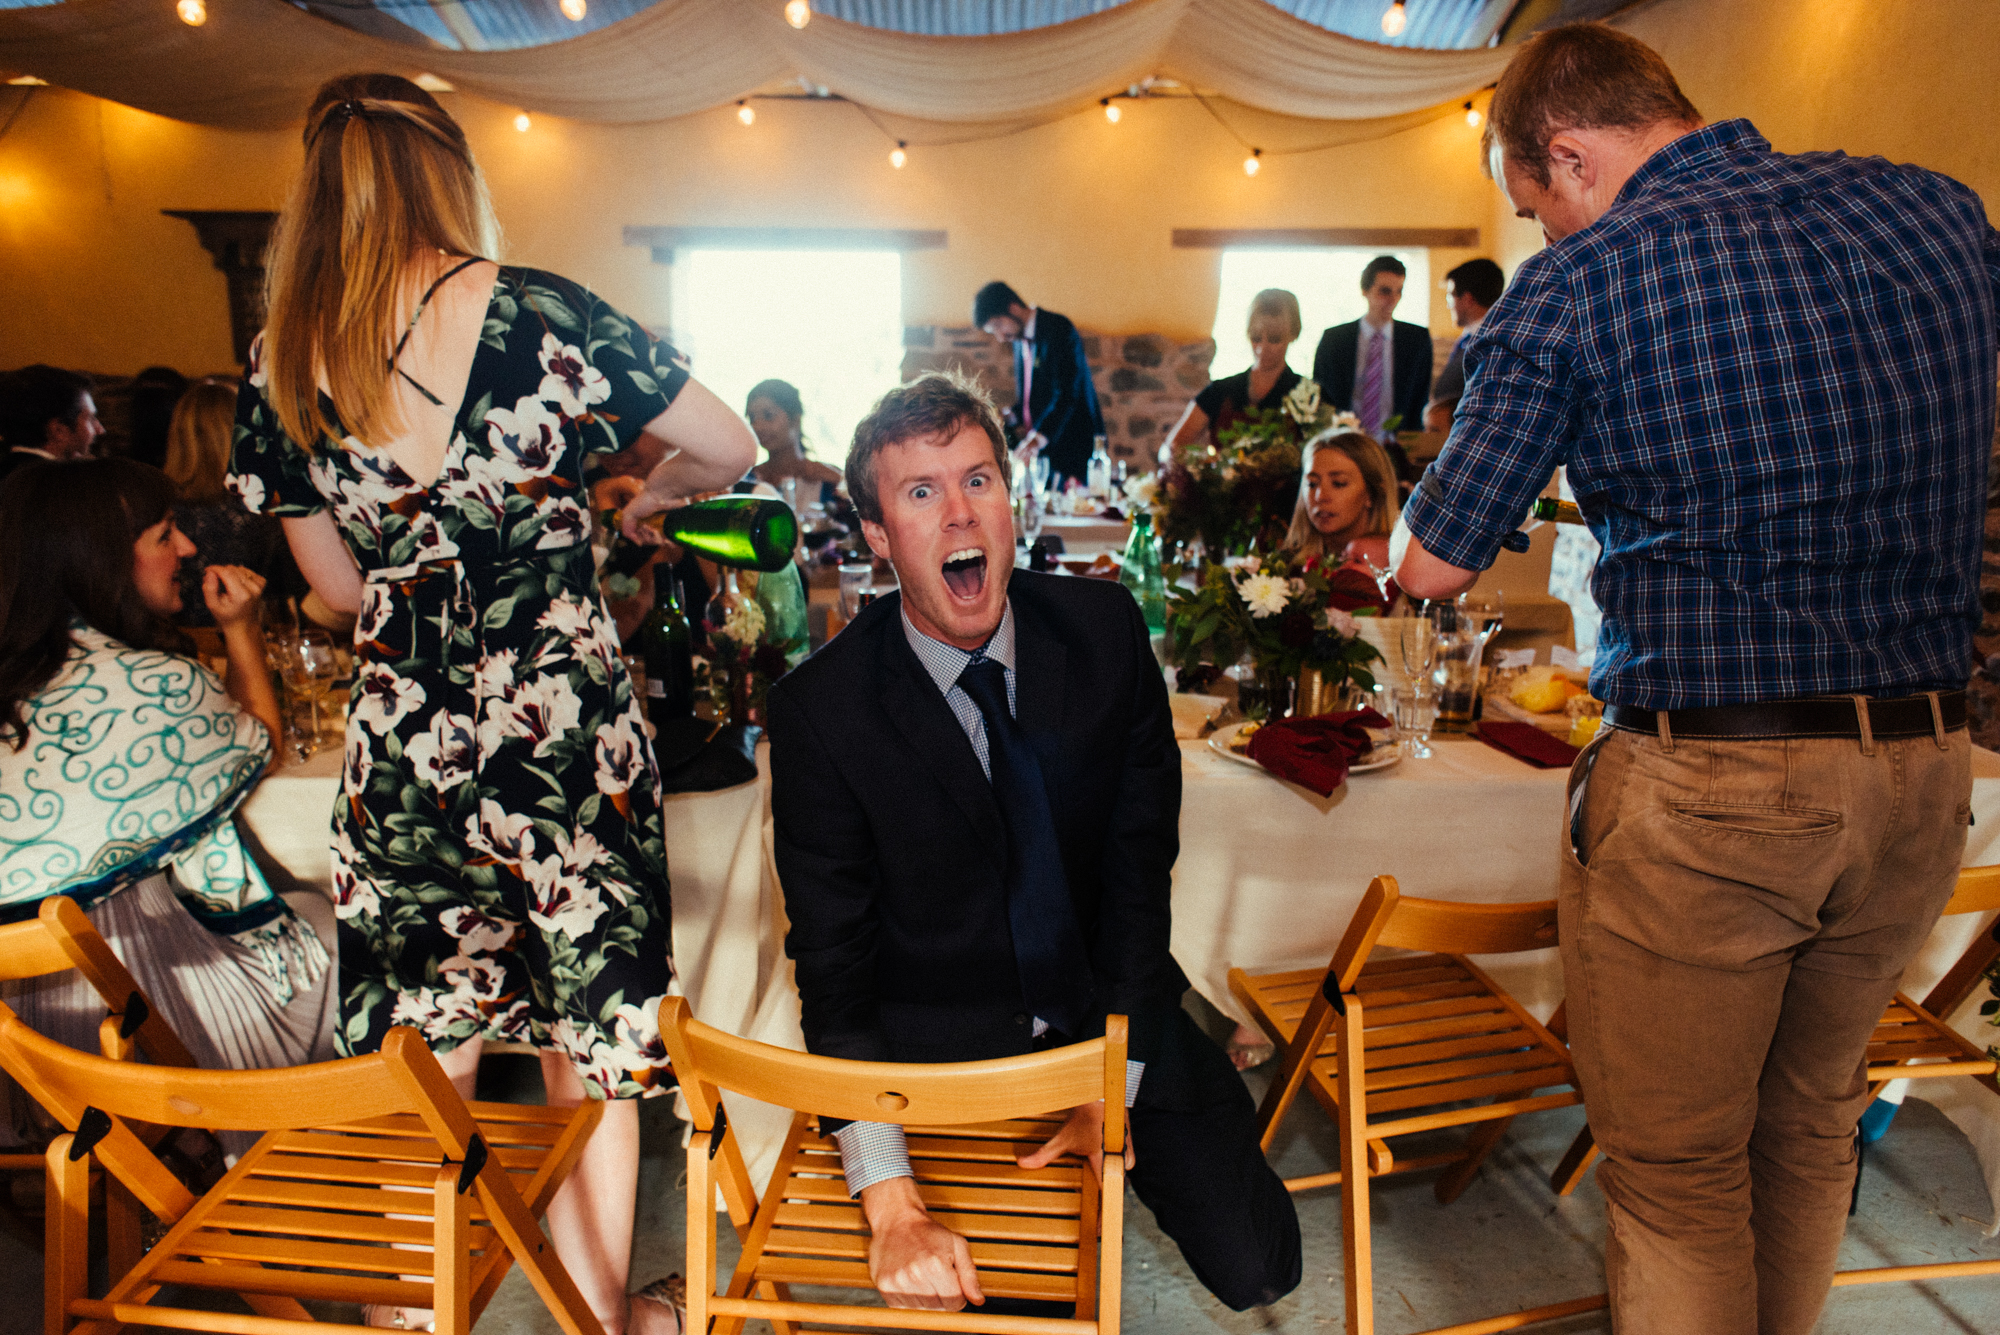 77-wedding-guest-fun-silly-photography